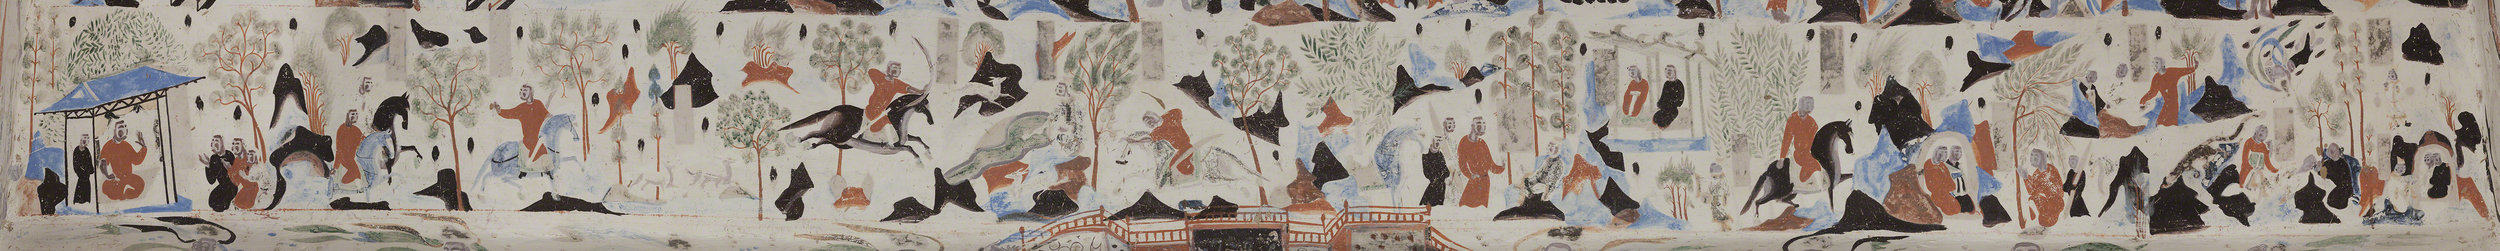 The complete Syama jataka tale mural.  Mogao Cave 302.Sui,581-618 CE. Dunhuang. Image courtesy of the Dunhuang Academy.